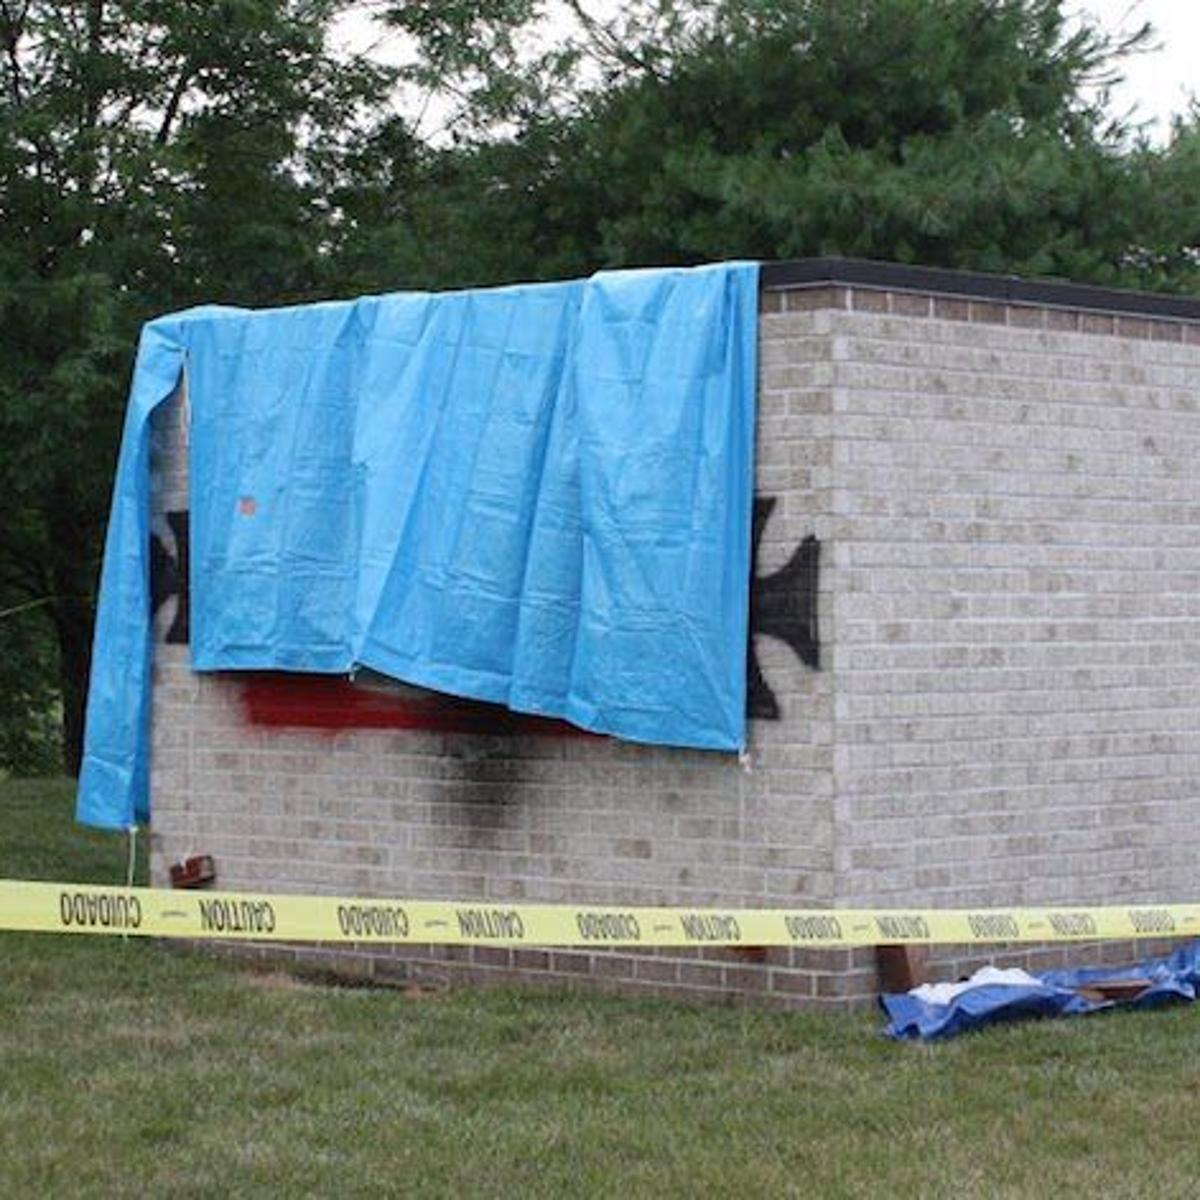 Arrests Made in Synagogue Vandalism Case | News | nuvo net